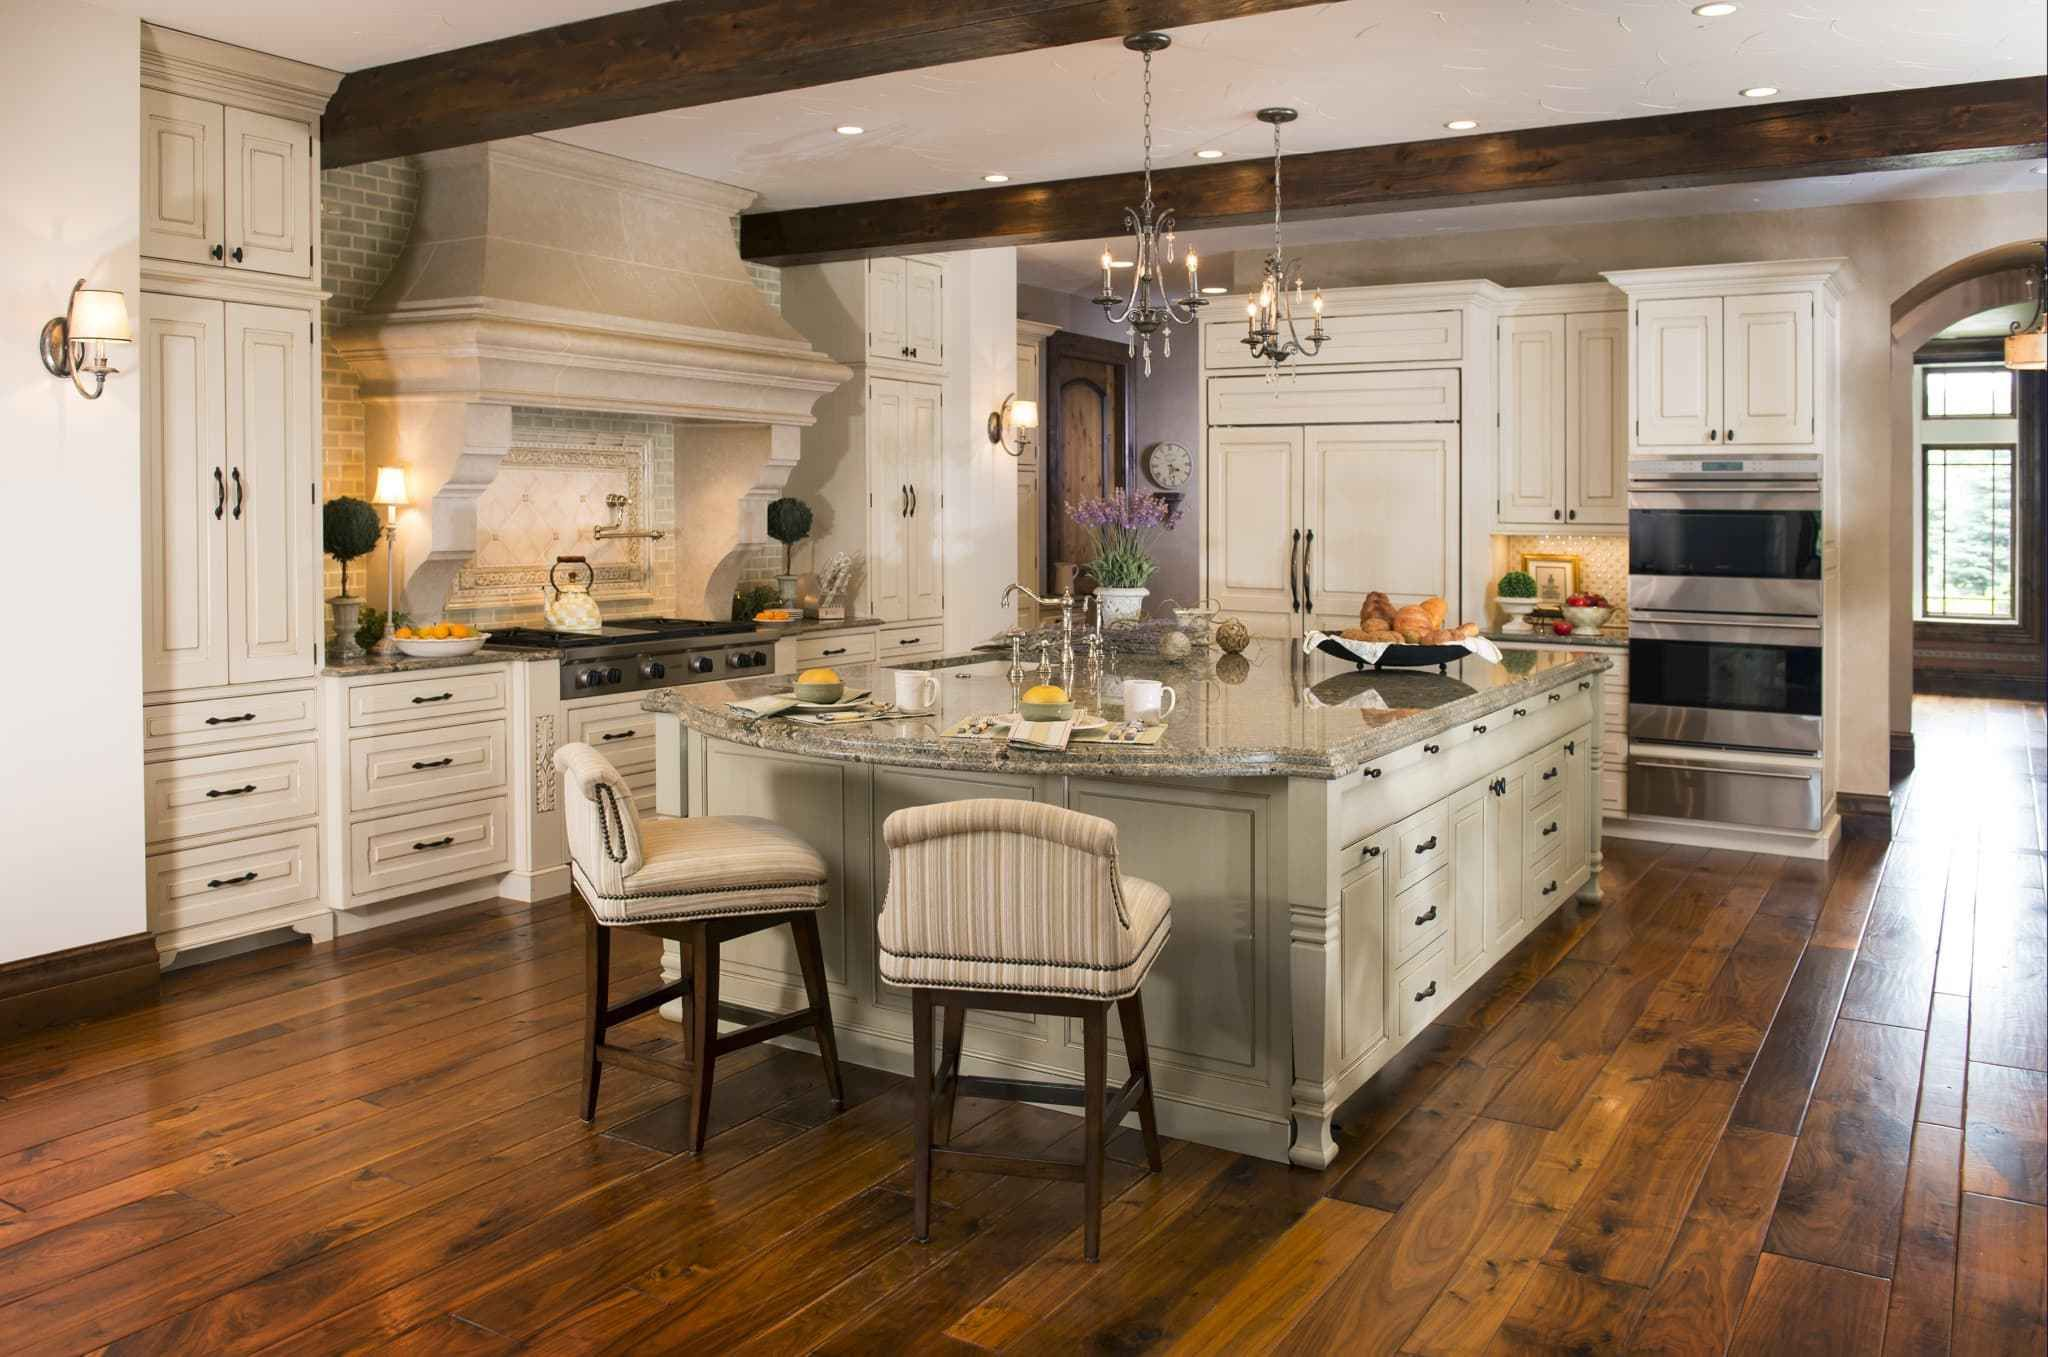 Dutch Made Cabinets Kcma Certified Responsible And Sustainable Cabinets Kitchen Design Luxury Kitchen Design Luxury Kitchen